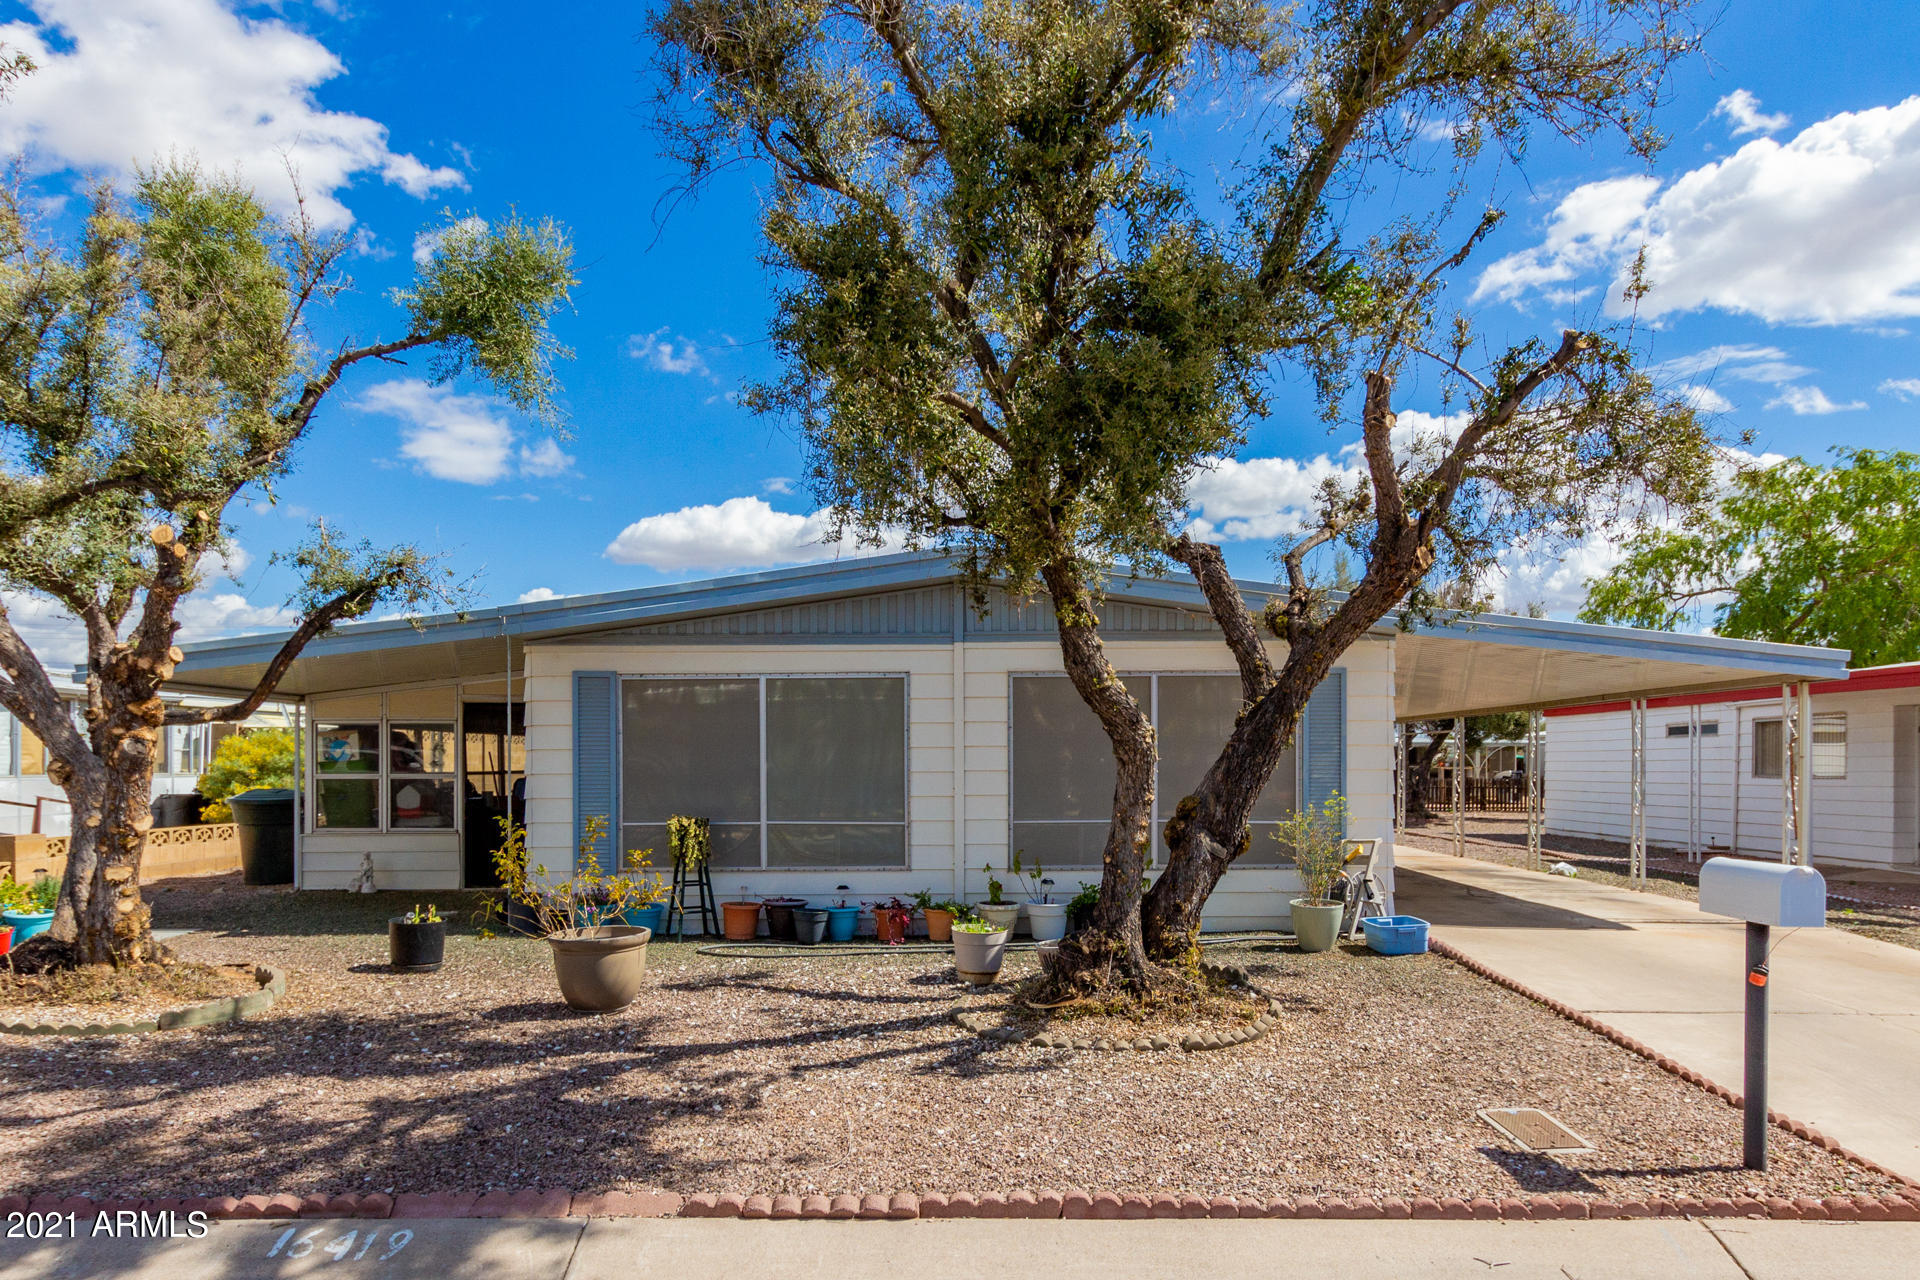 16419 N 35th Place, Phoenix AZ 85032